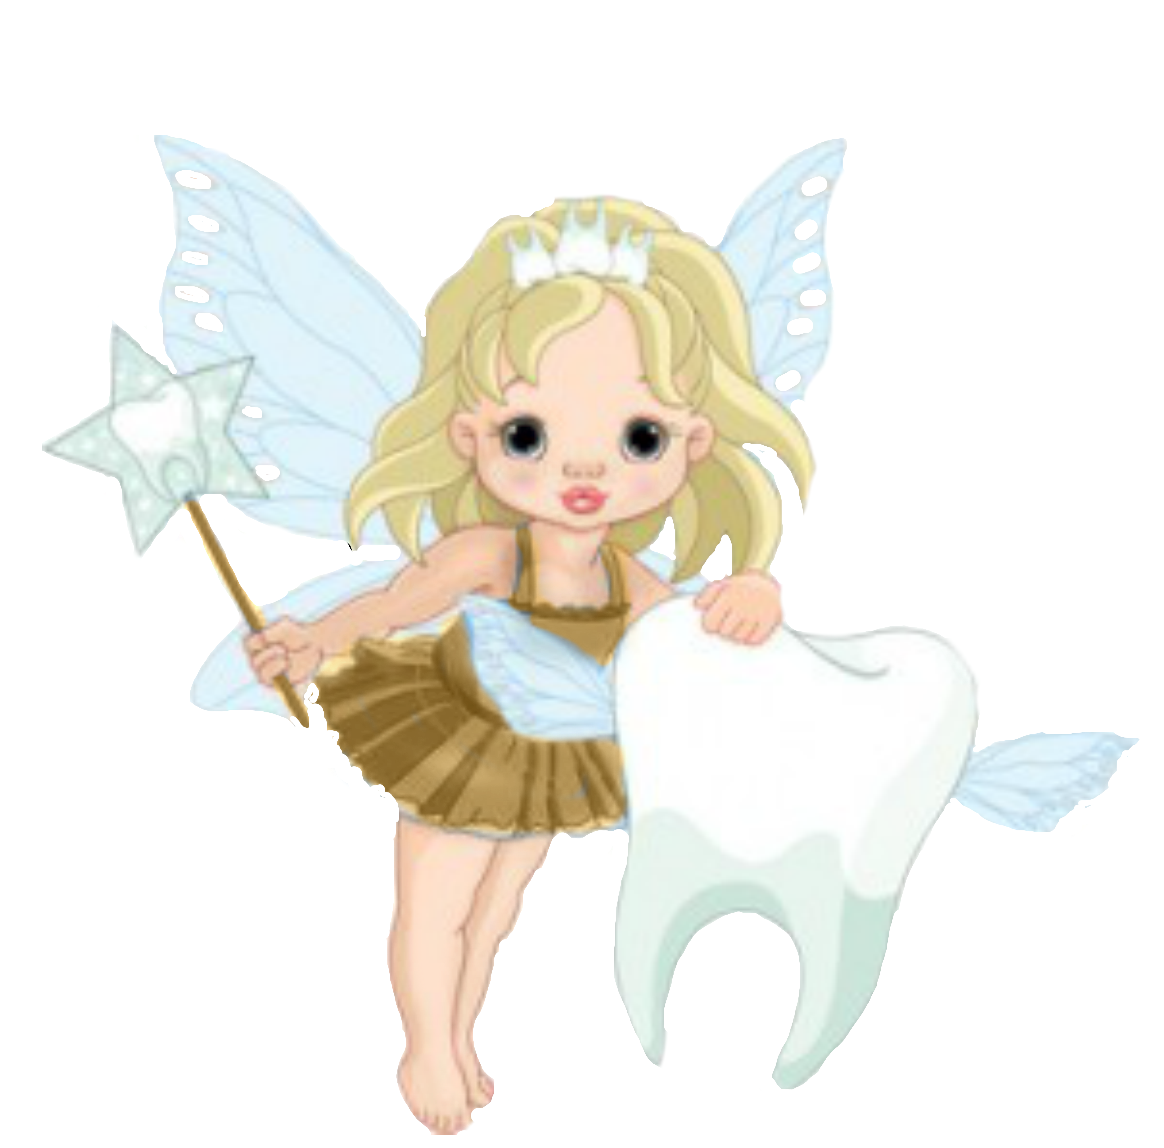 Tooth Fairy Png Free Tooth Fairy Png Transparent Images 3035 Pngio